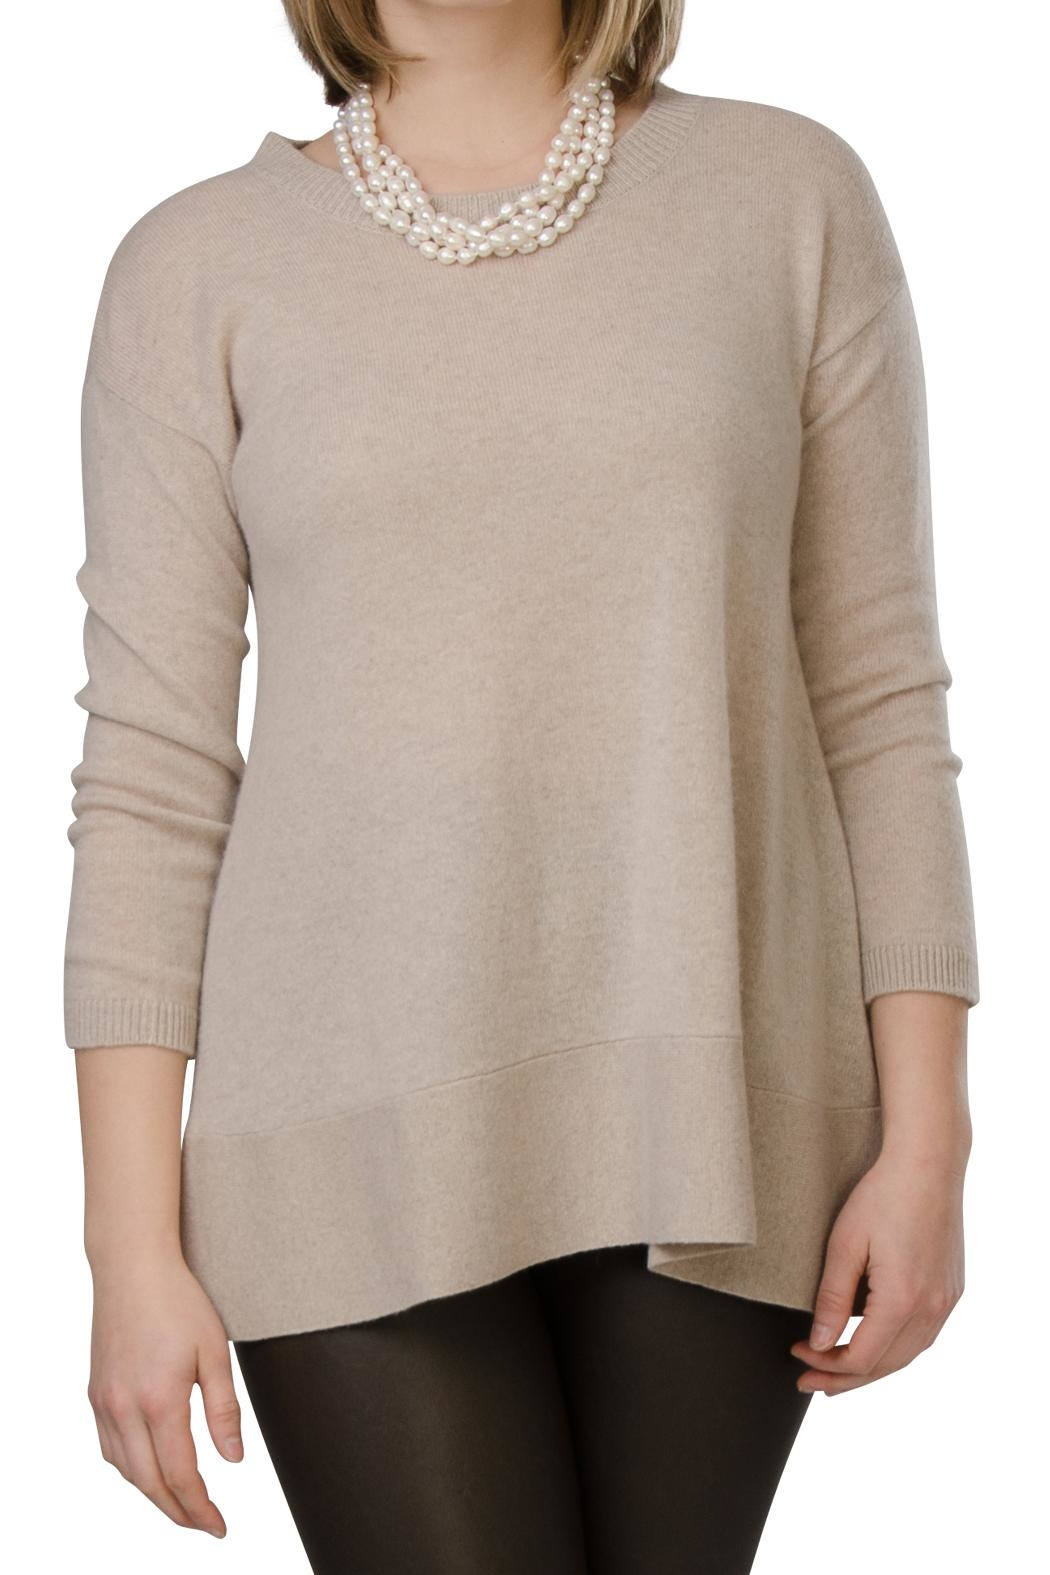 Cortland Park Cashmere St. Tropez Sweater - Front Cropped Image